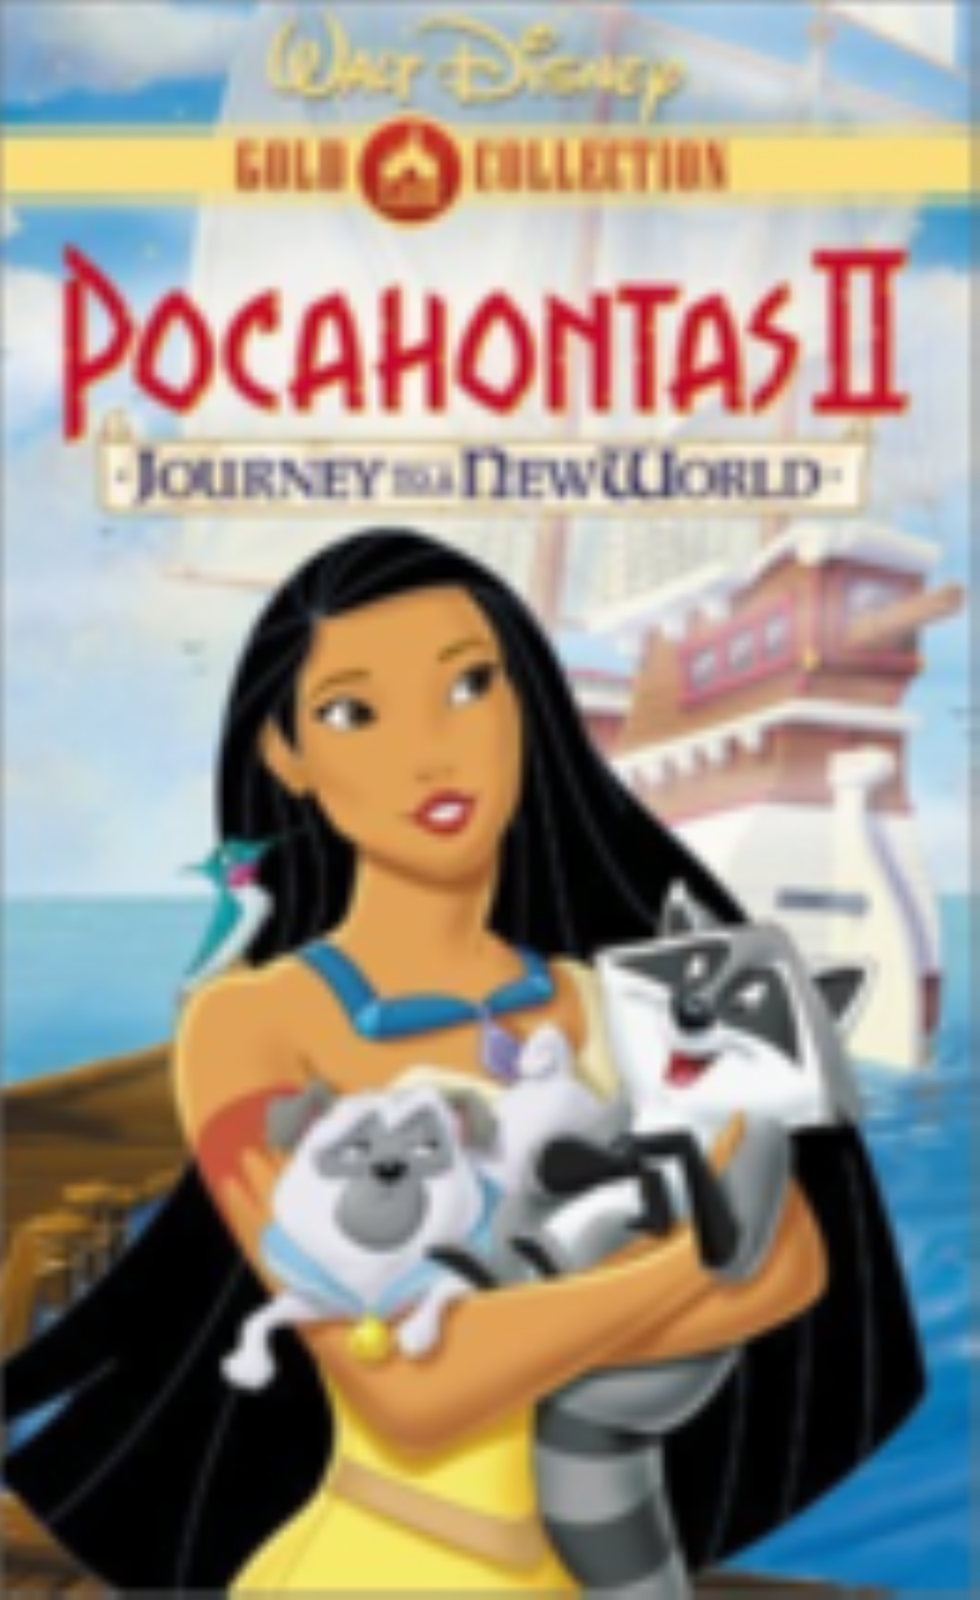 Pocahontas II: Journey to a New World Vhs